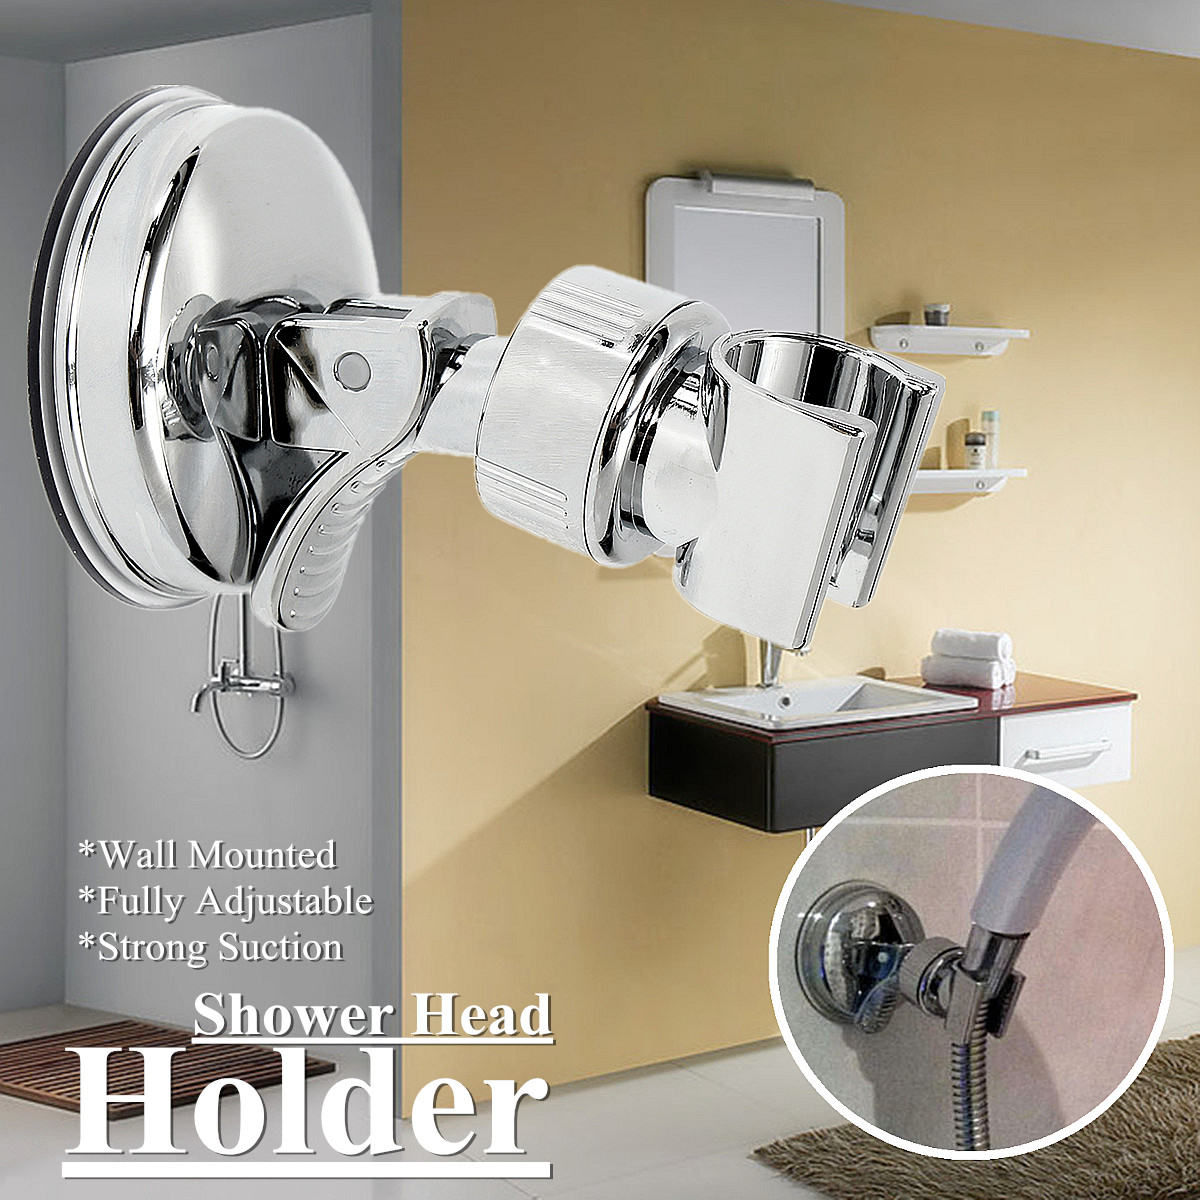 Adjustable ABS Plastic Shower Head Holder With Suction Cup Wall Handheld Shower Water Hose Bracket